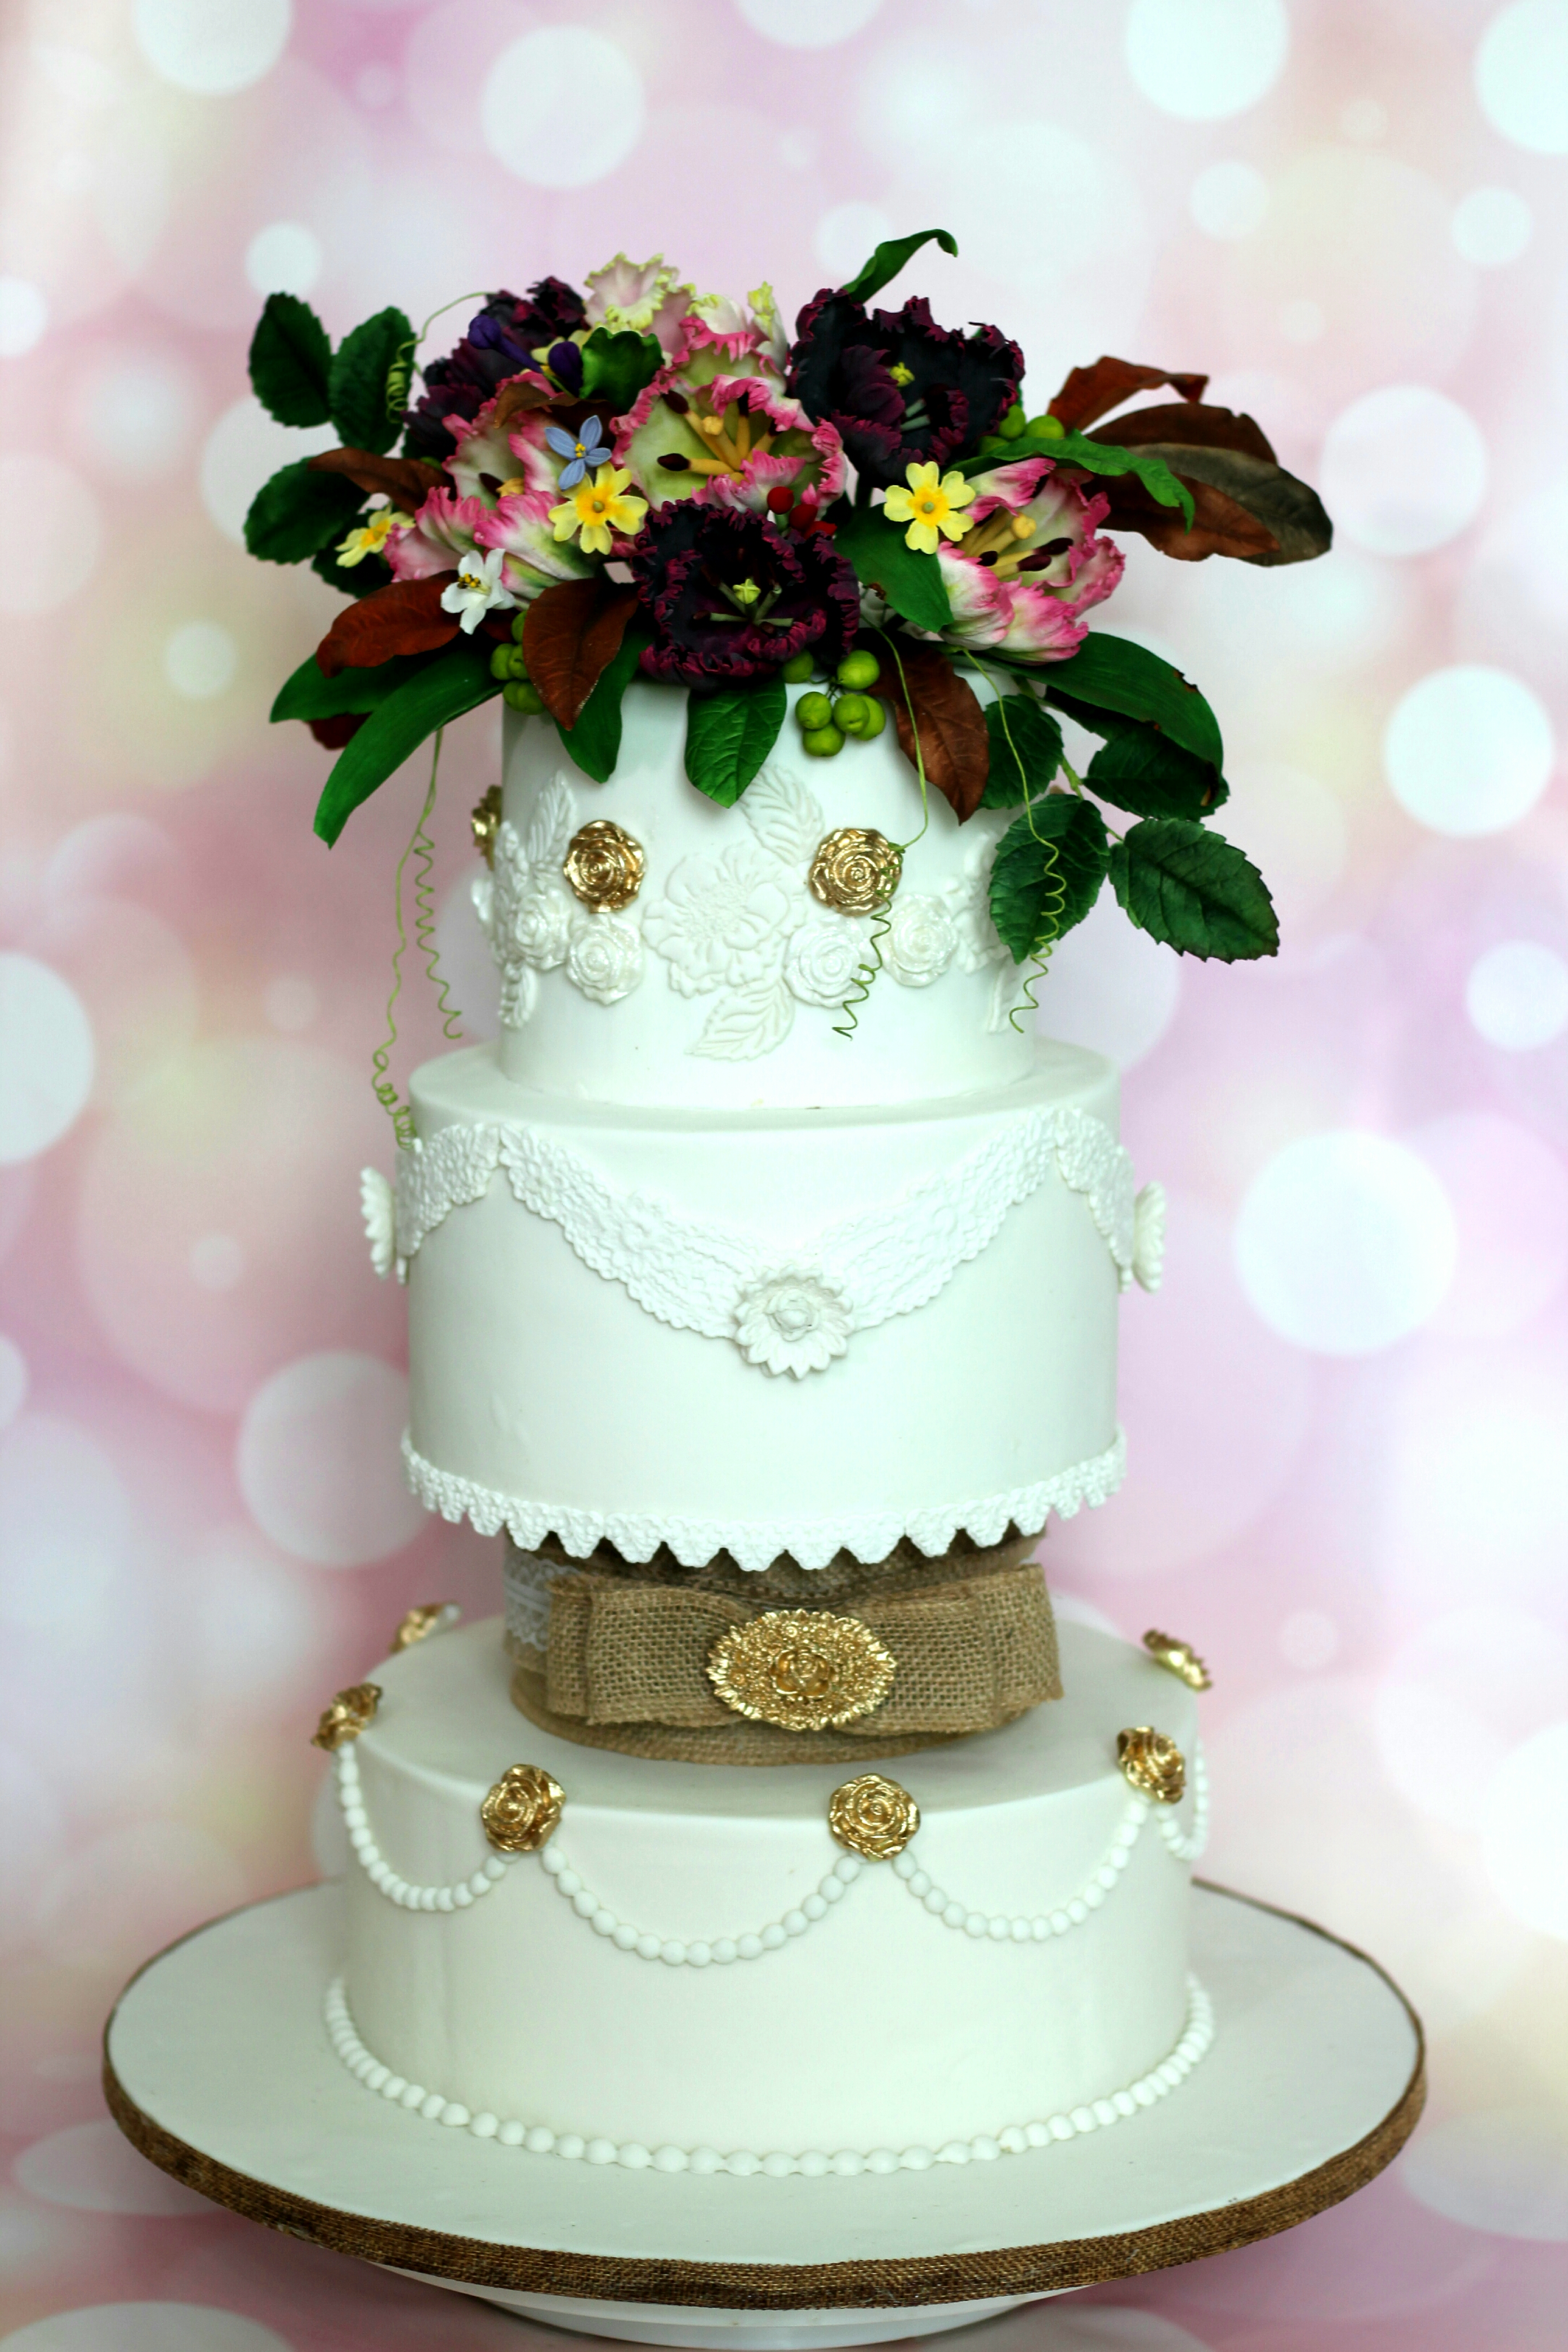 White ornate wedding cake with dark sugar flowers on top